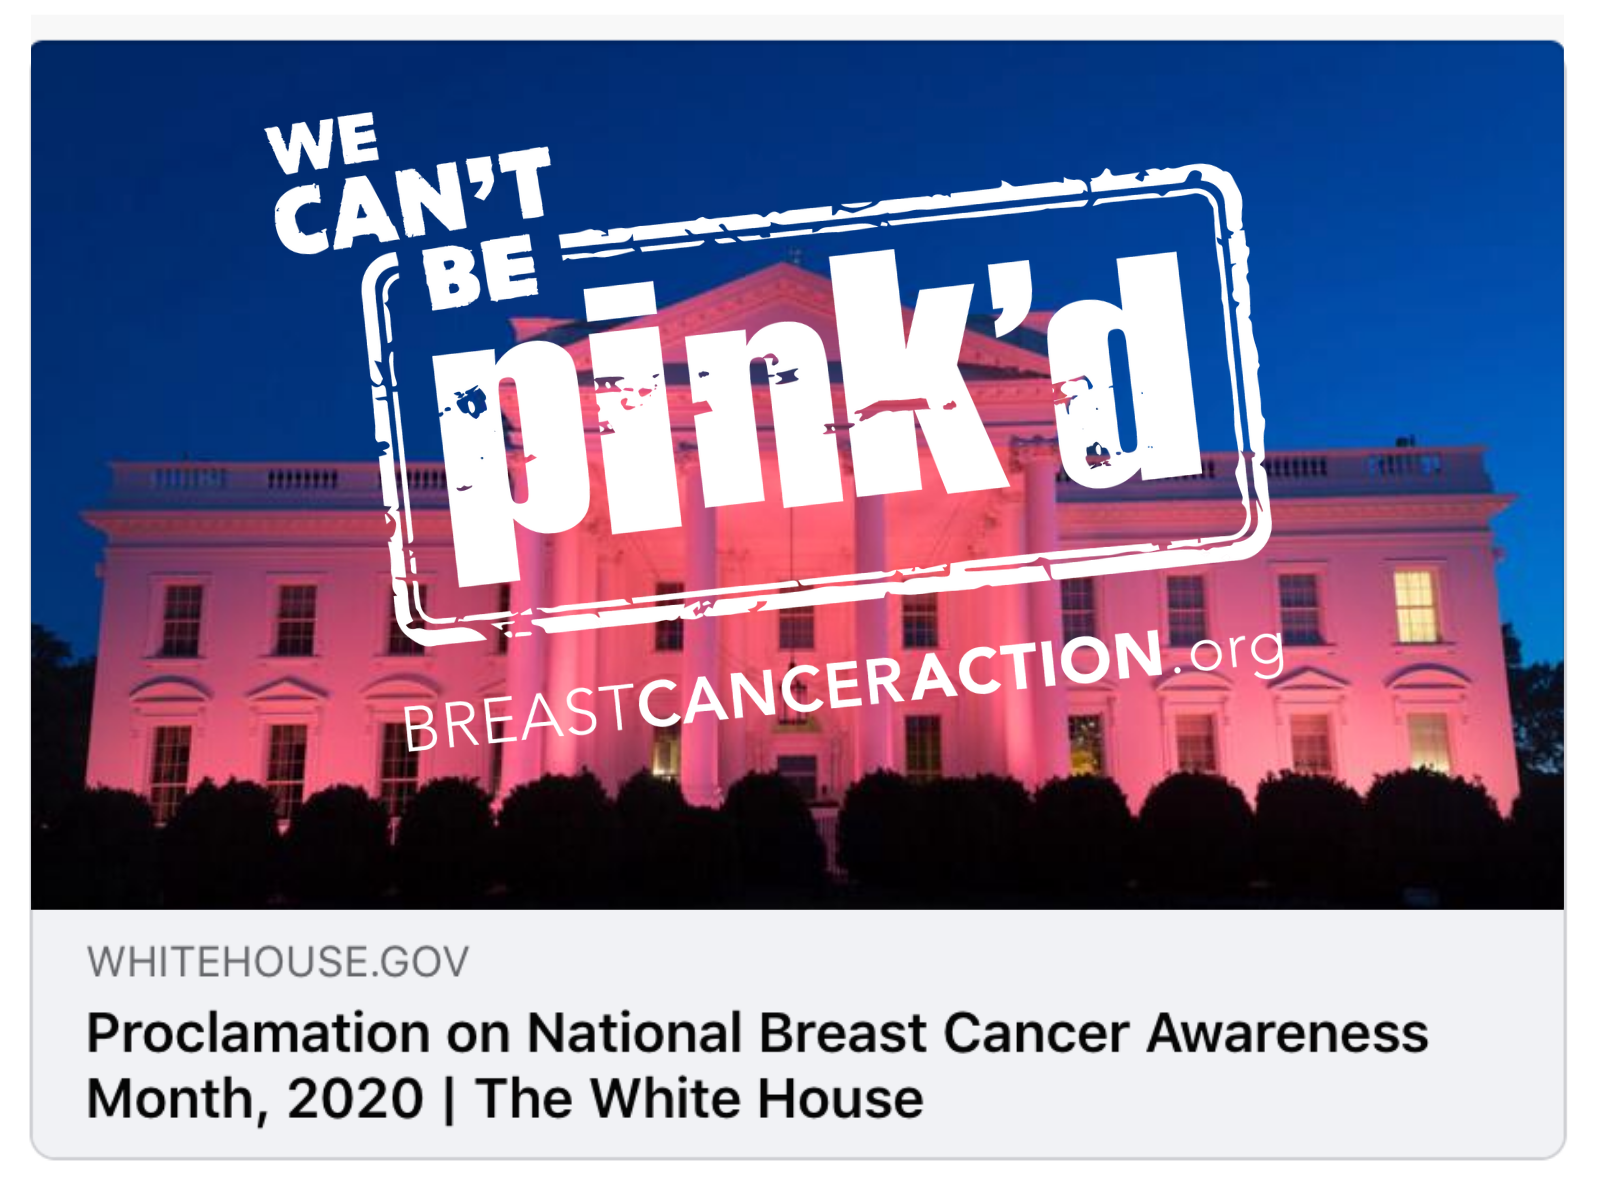 The Presidental Proclamation Image with the Think Before You Pink stamp stamped over it